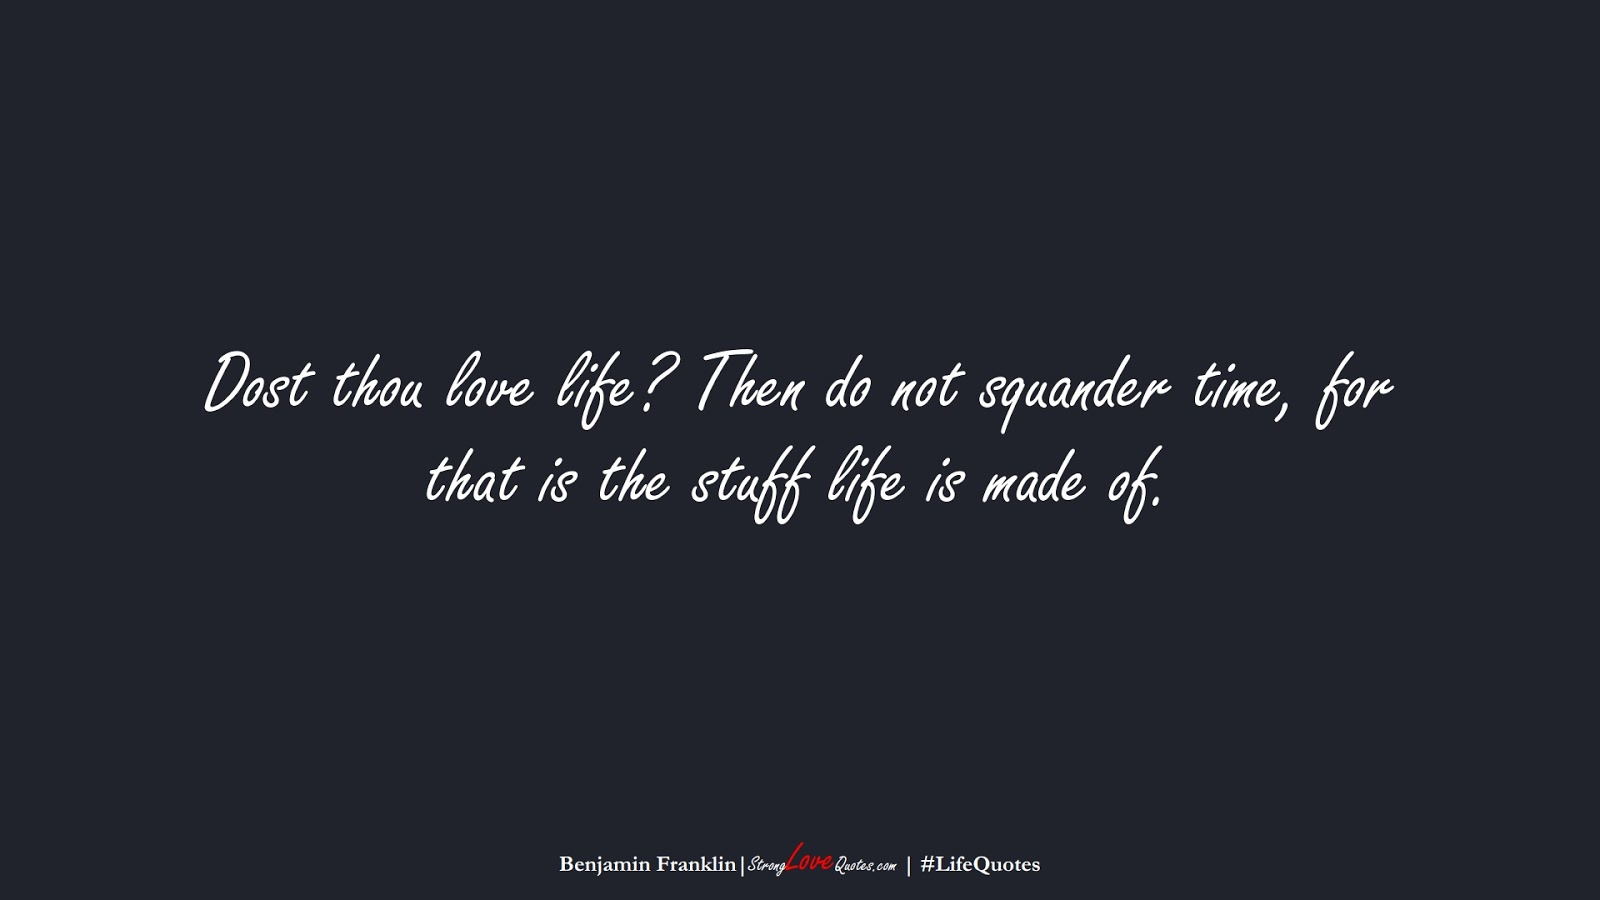 Dost thou love life? Then do not squander time, for that is the stuff life is made of. (Benjamin Franklin);  #LifeQuotes